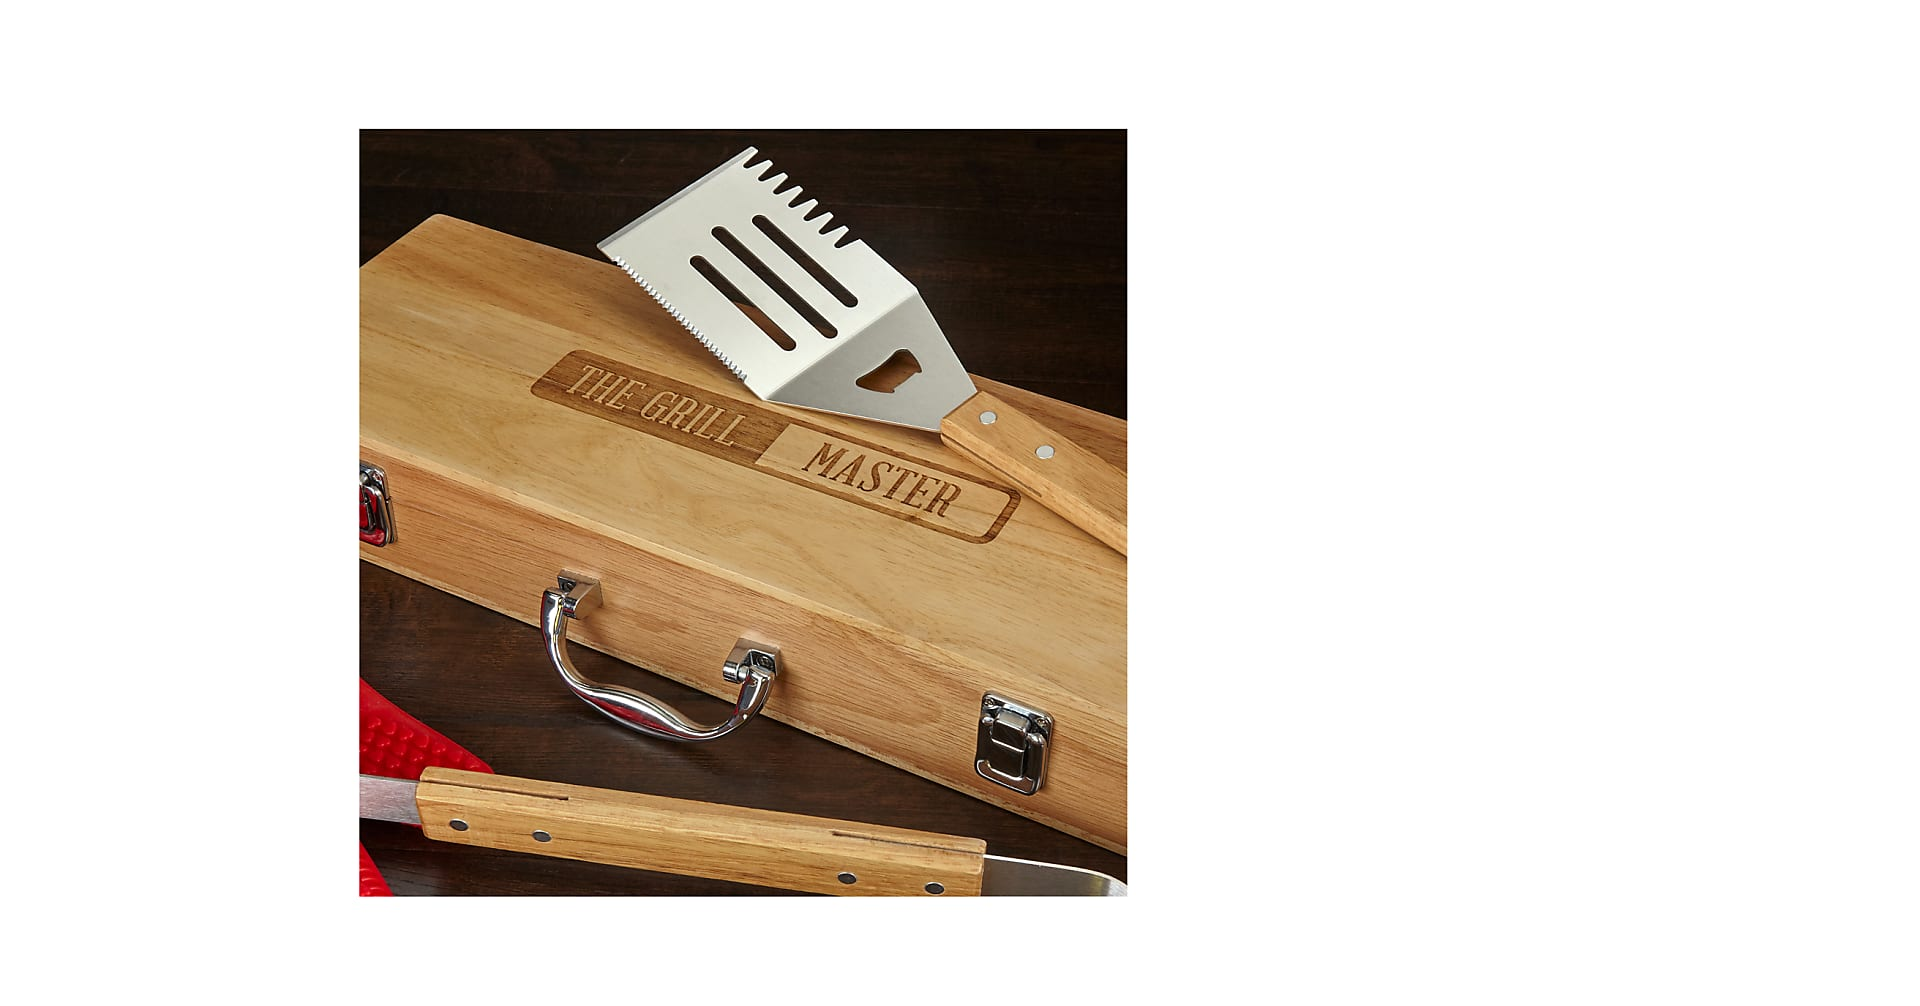 Grill Master Barbeque Tool Set - Image 2 Of 3